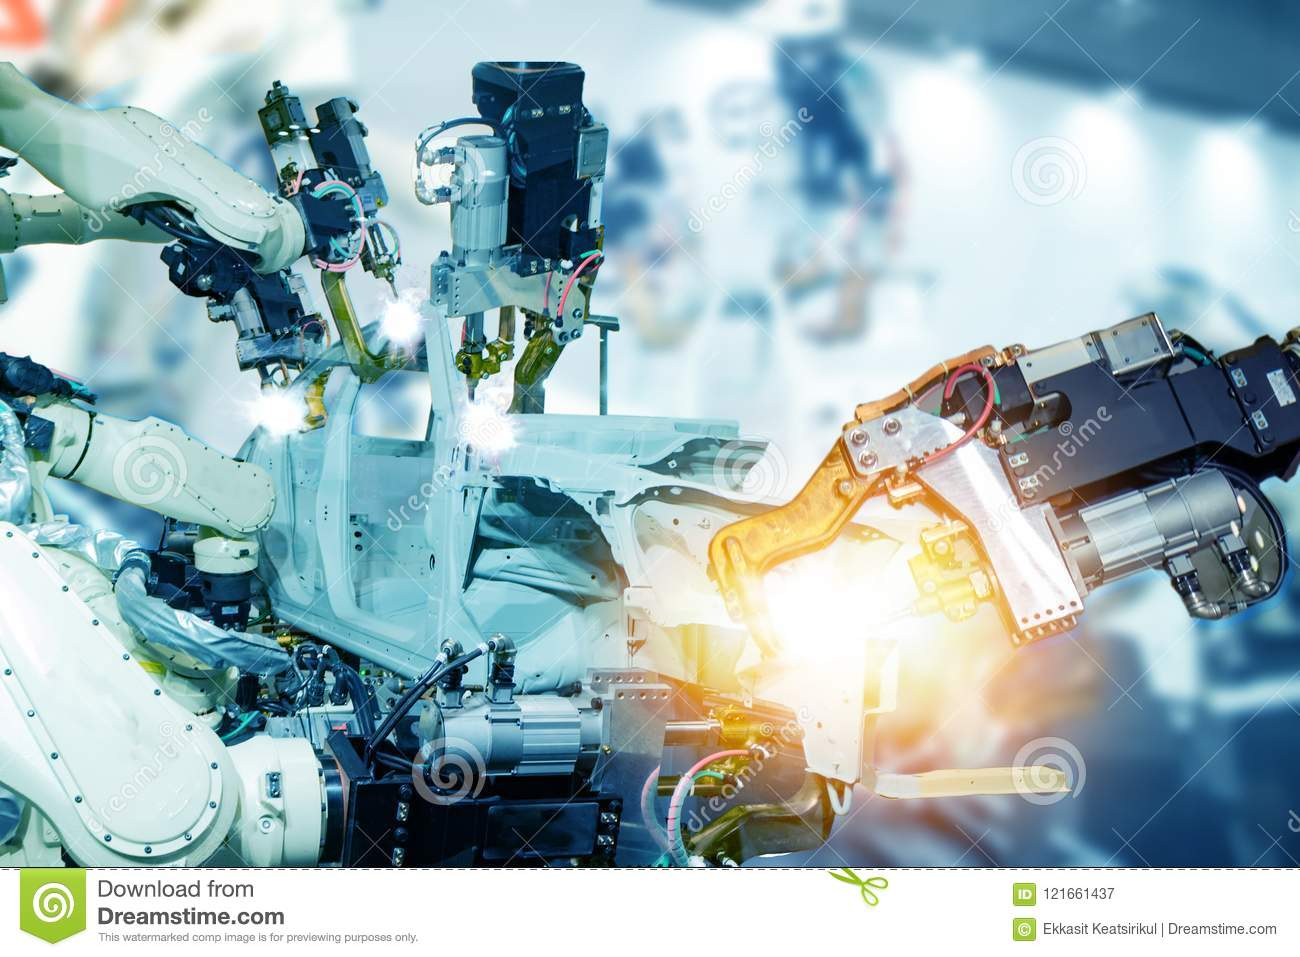 Iot smart factory , industry 4.0 technology concept, robot arm in automation factory background with fake sunlight on operation li